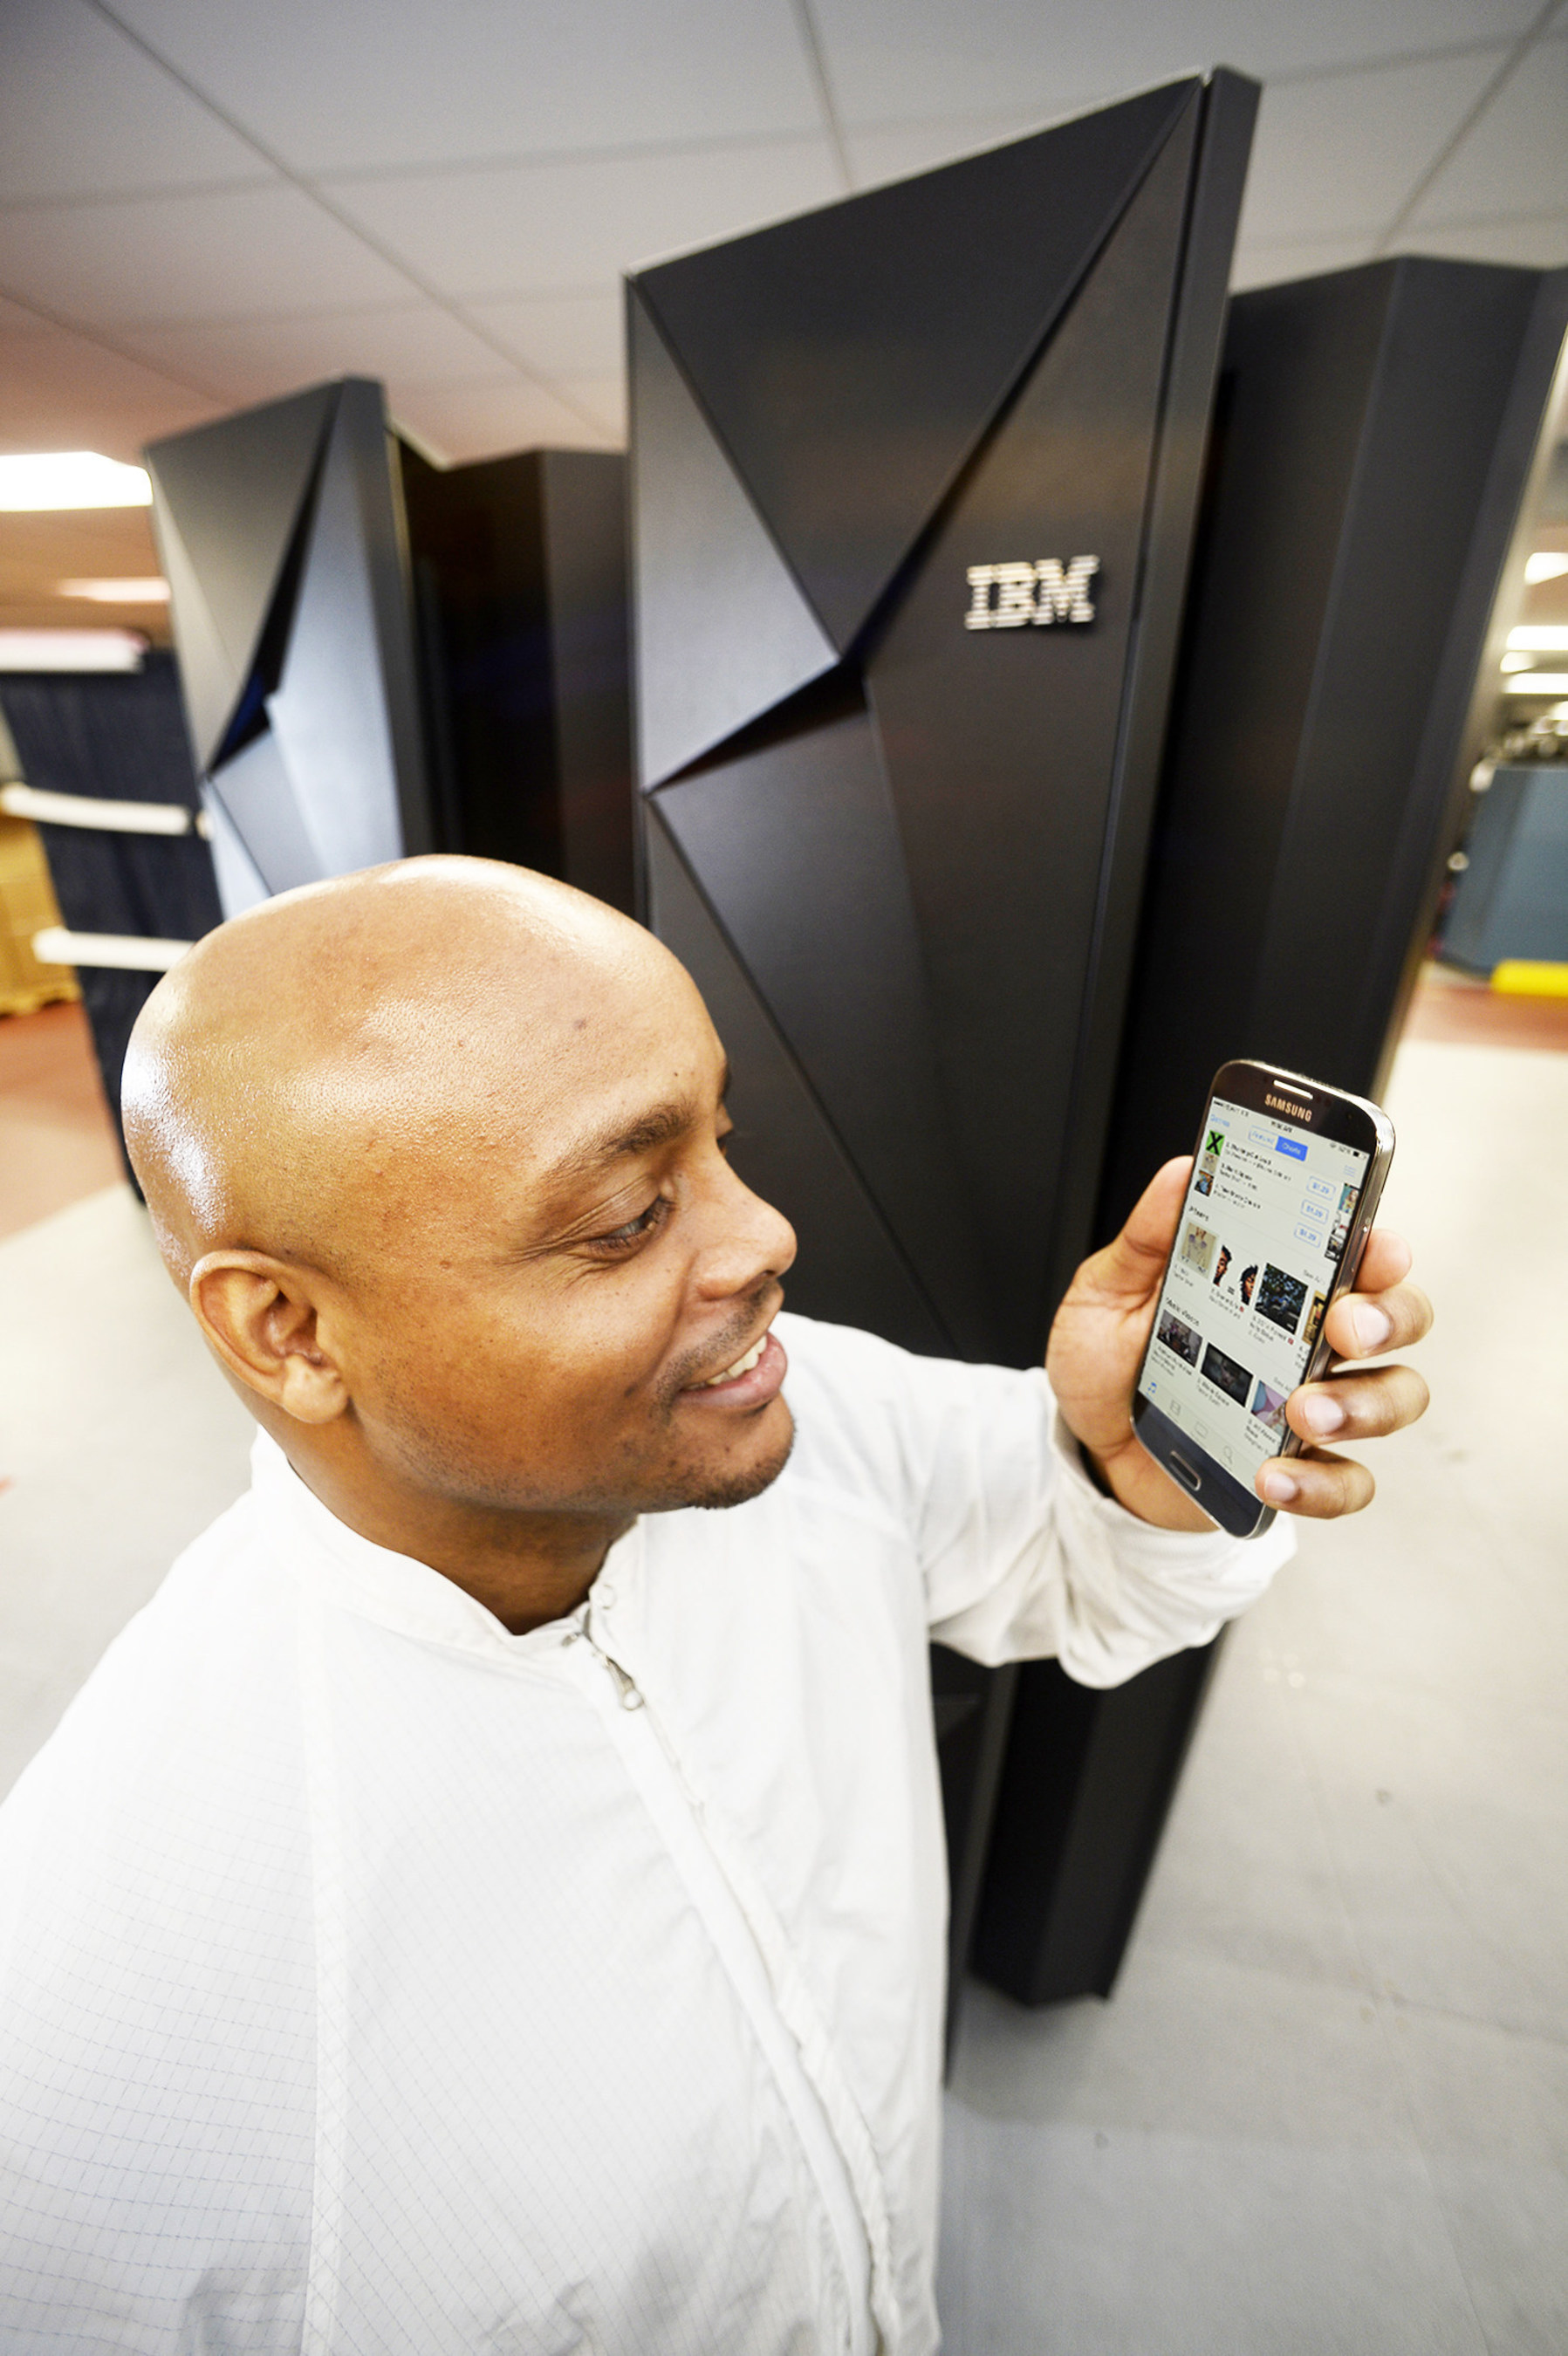 January 14, 2015 - At IBM's manufacturing facility in Poughkeepsie, NY, software developer Moses Vaughan tests a mobile app that is running on IBM's new z13 mainframe, one of the most sophisticated computer systems ever built. It culminates a $1 billion investment, five years of development, and includes more than 500 new patents and represents a collaboration with over 60 clients, underscoring IBM's commitment to providing higher-value, innovative technology for clients. (Jon Simon/Feature Photo Service for IBM)